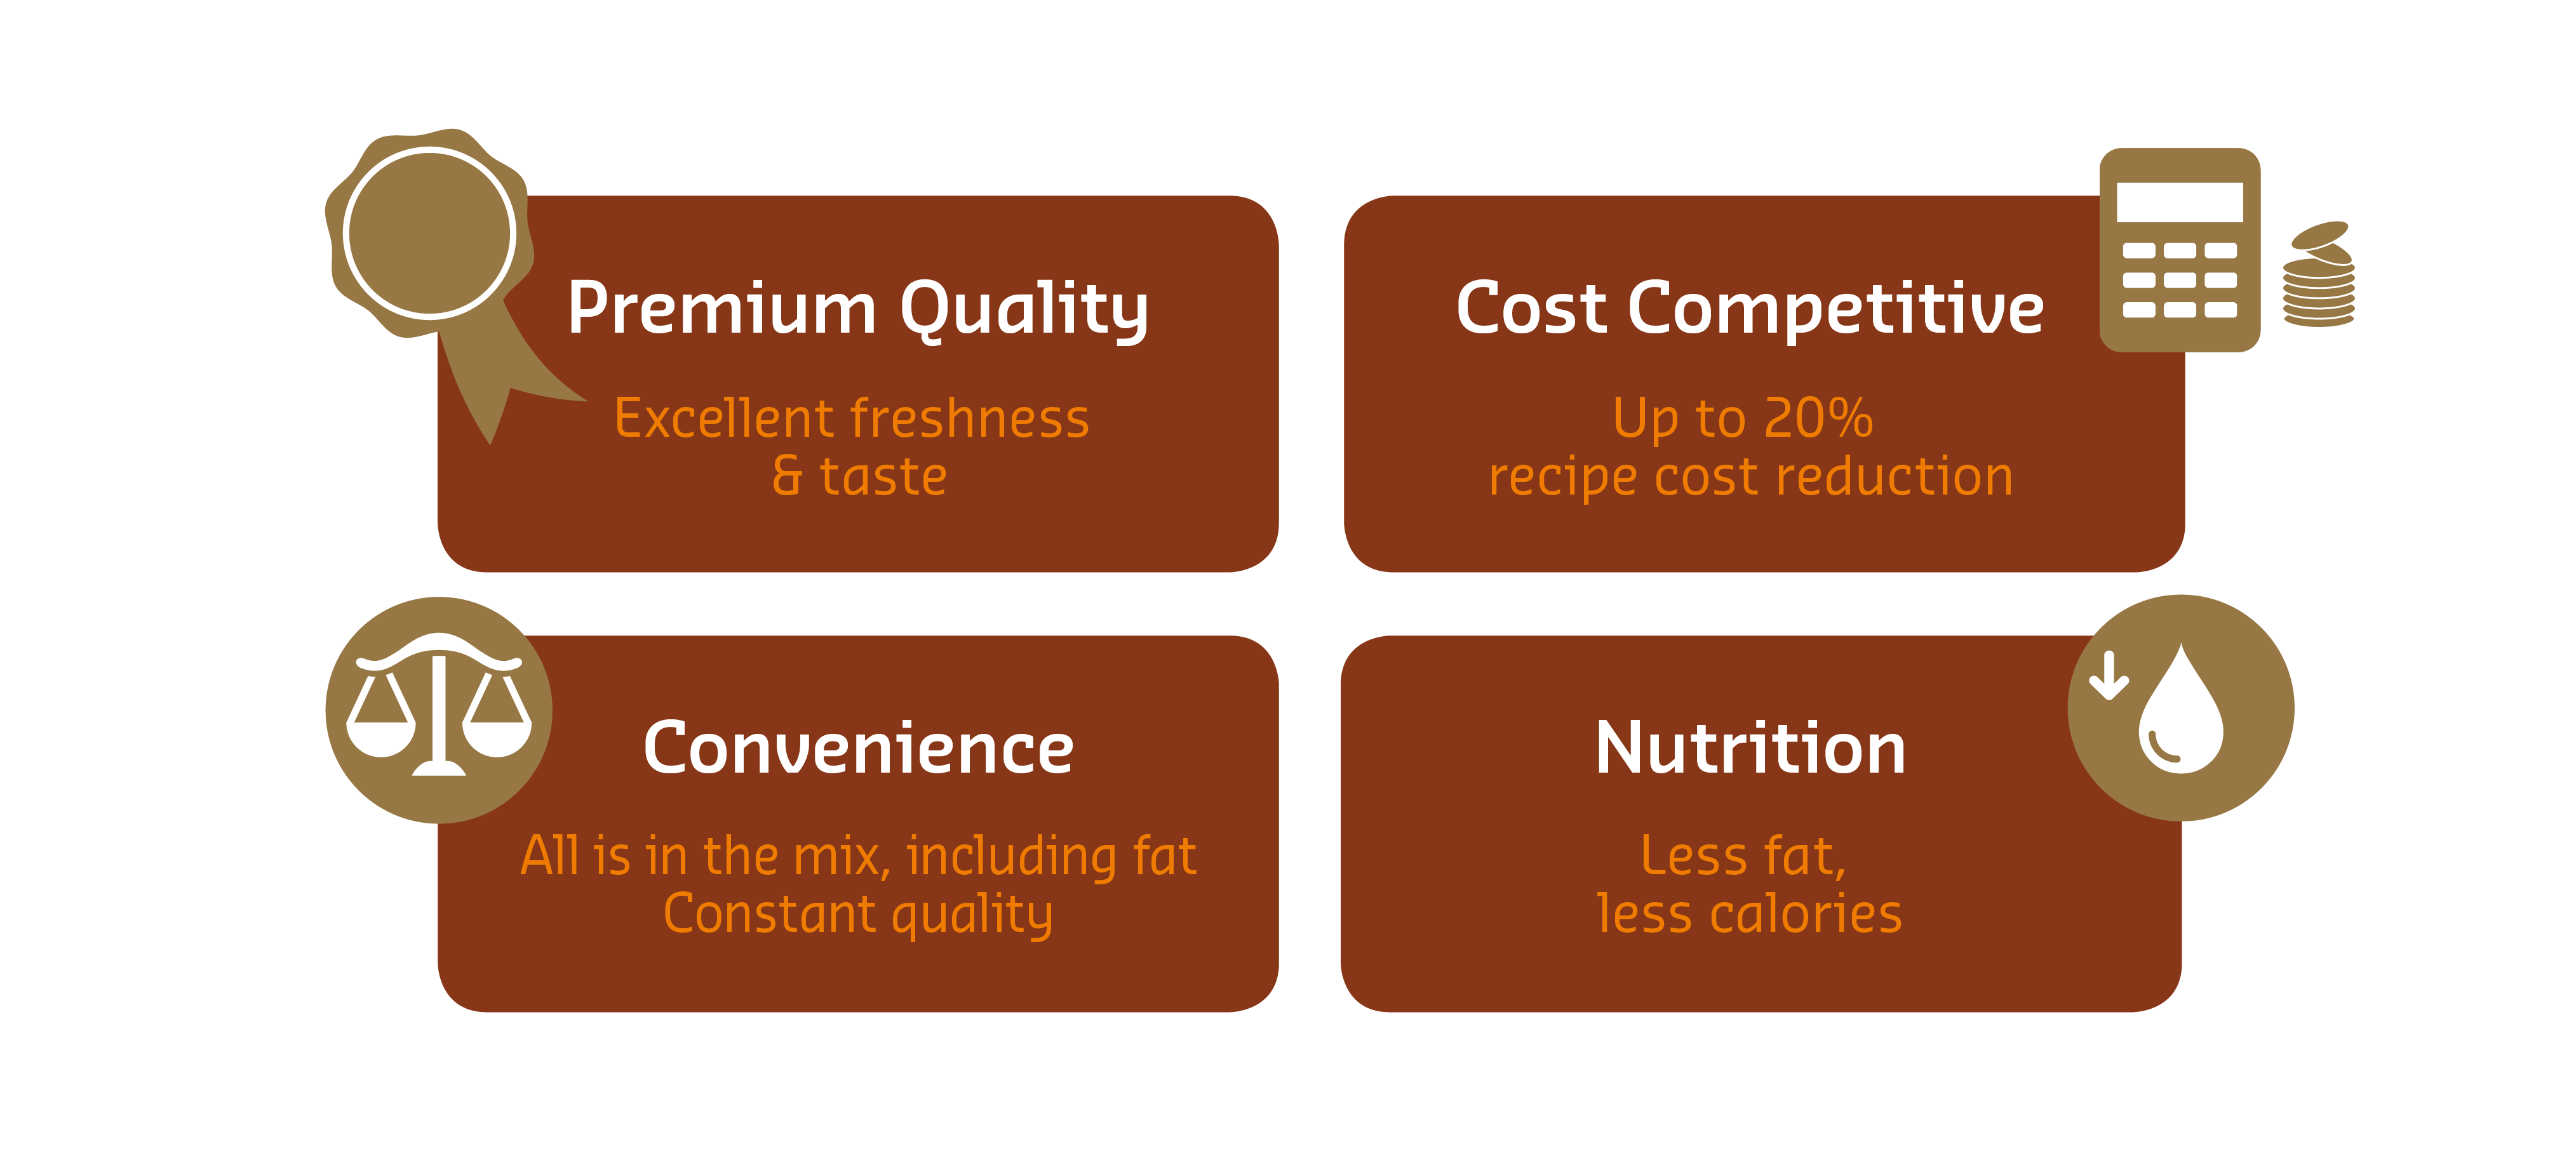 Puraslim: premium quality at lower cost